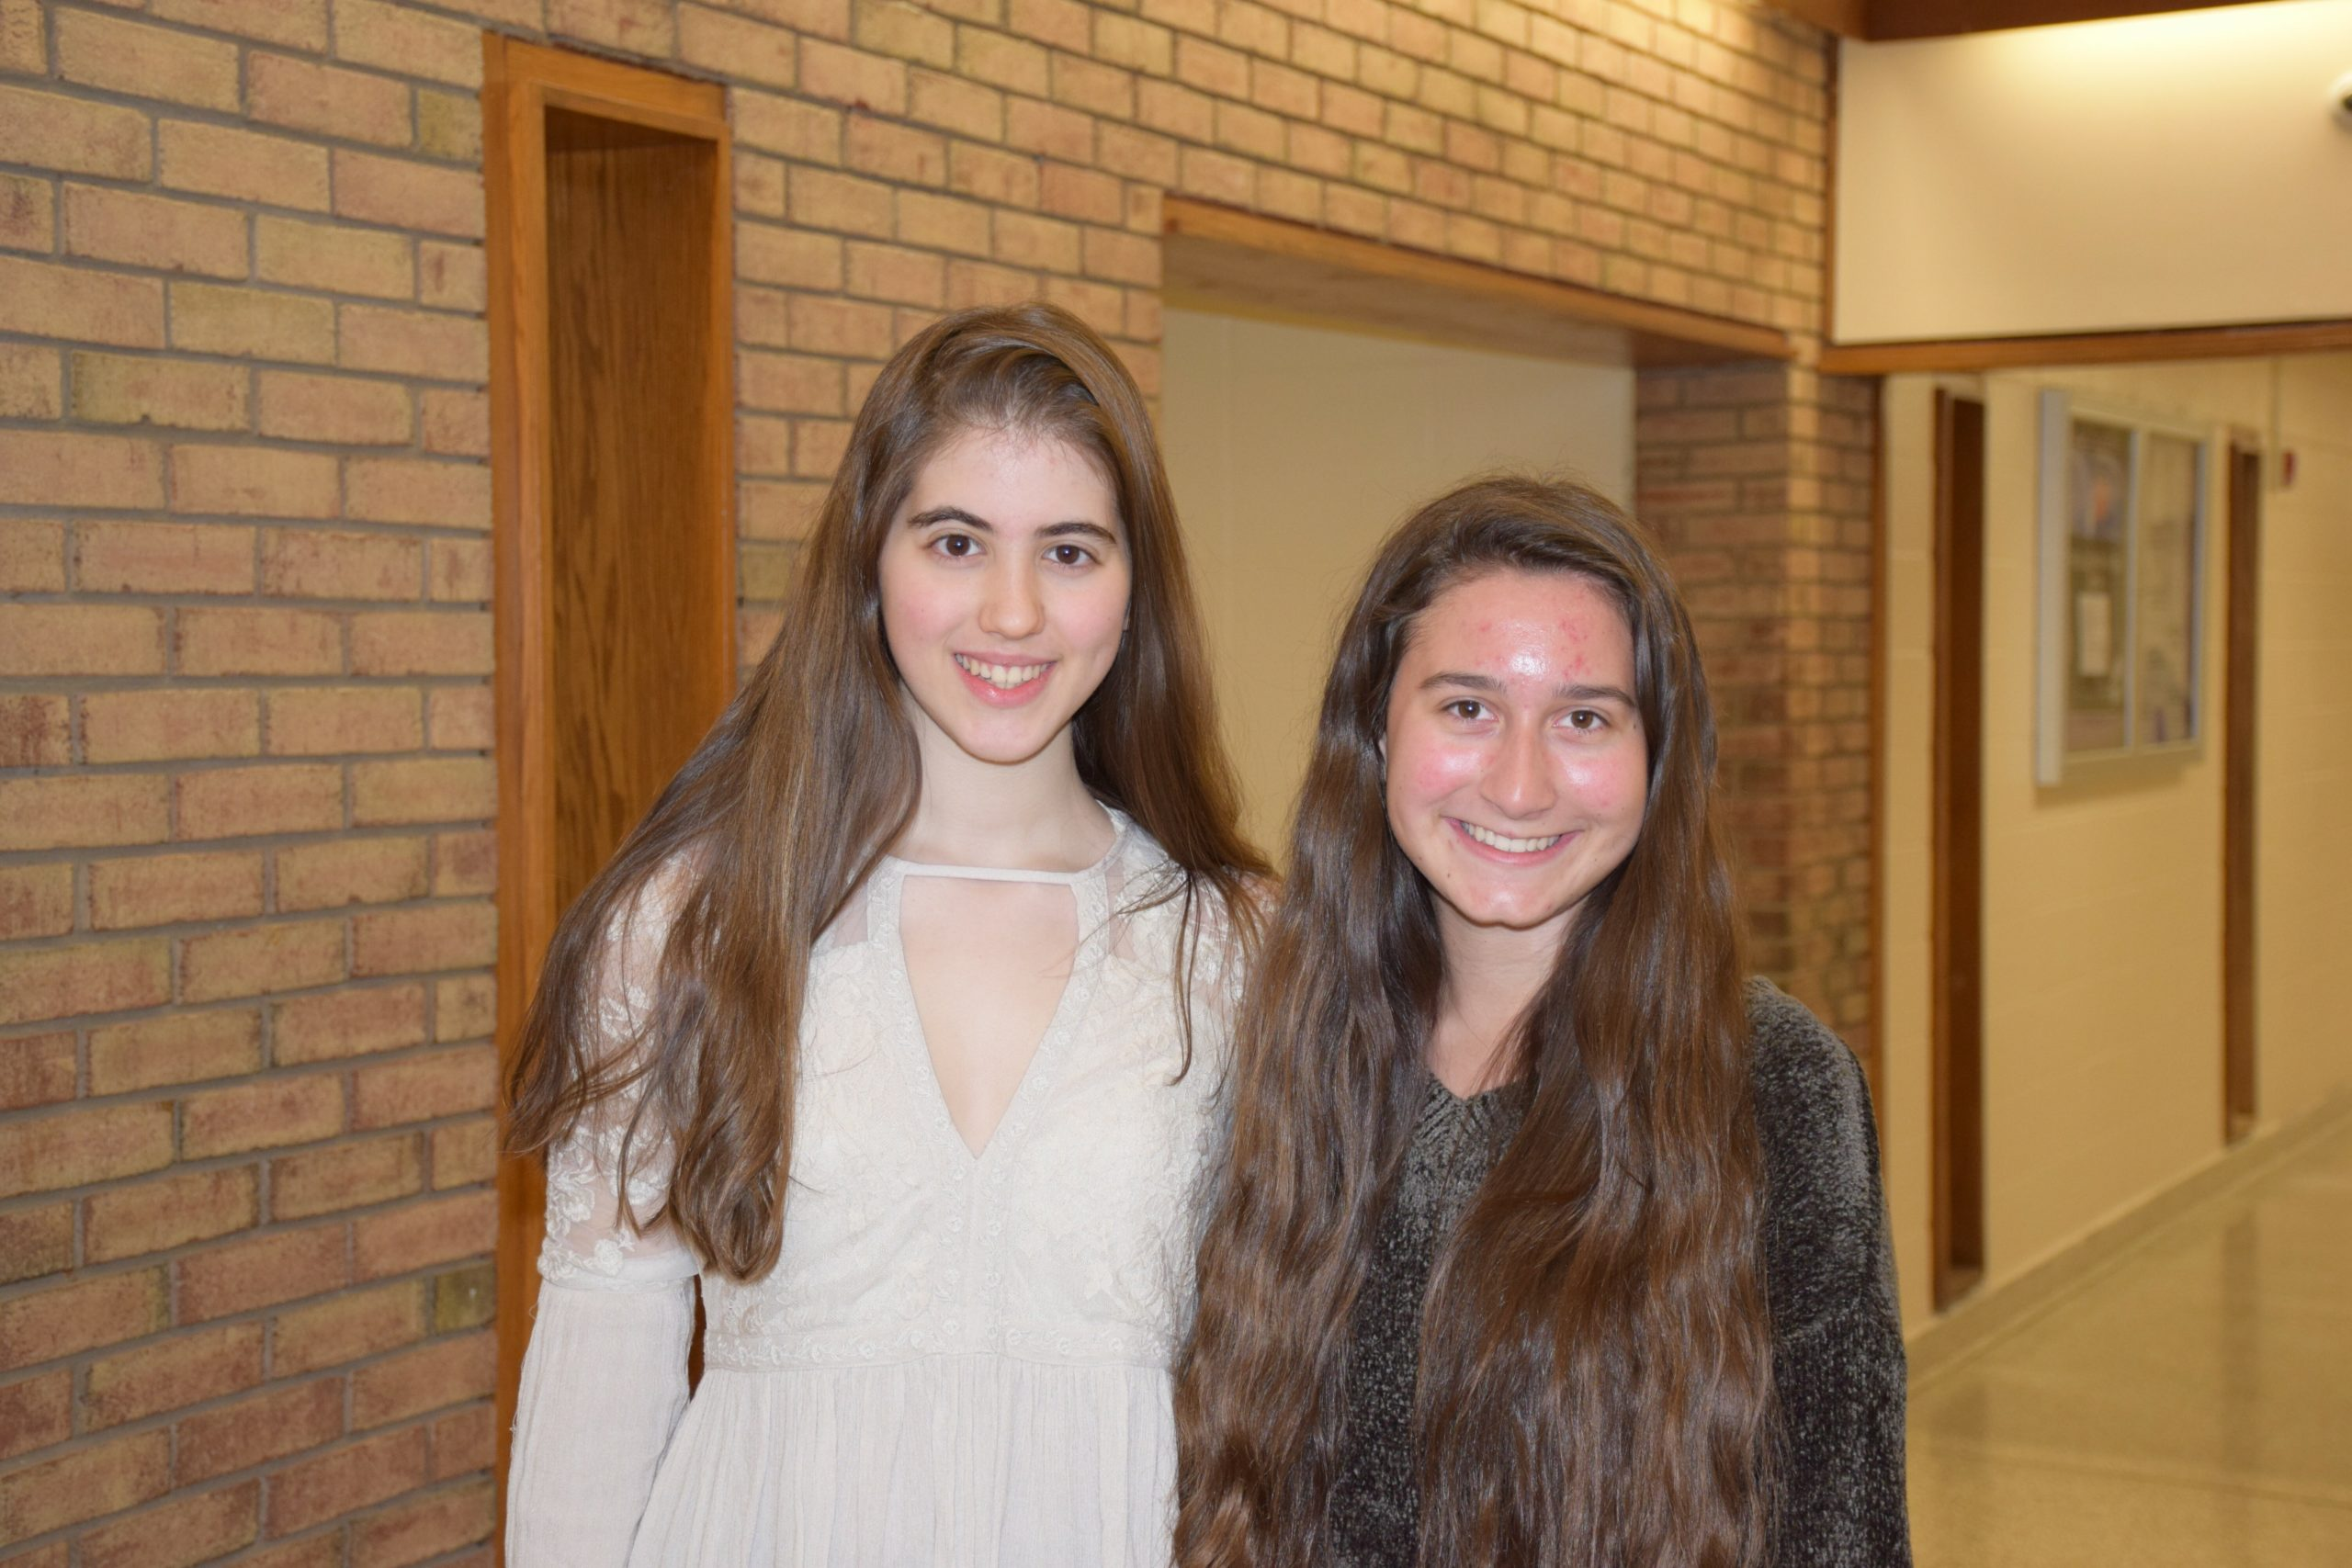 Hampton Bays High School seniors Skye McMorris, left, and Gabrielle Caine have been named National Merit Commended Students. In addition to their studies, both students are involved in their school. Gabrielle is a member of the Interact and Rotary Youth Leadership clubs. She also sings, plays the cello and is the founder of the Healthy Harmony Club, a group of student musicians who perform at area nursing homes. She intends to pursue studies in the music industry in college. Skye is a science research student and a member of her school's Key Club, Interact Club and Science Olympiad team. She also plays volleyball. She plans to study biochemistry in college.